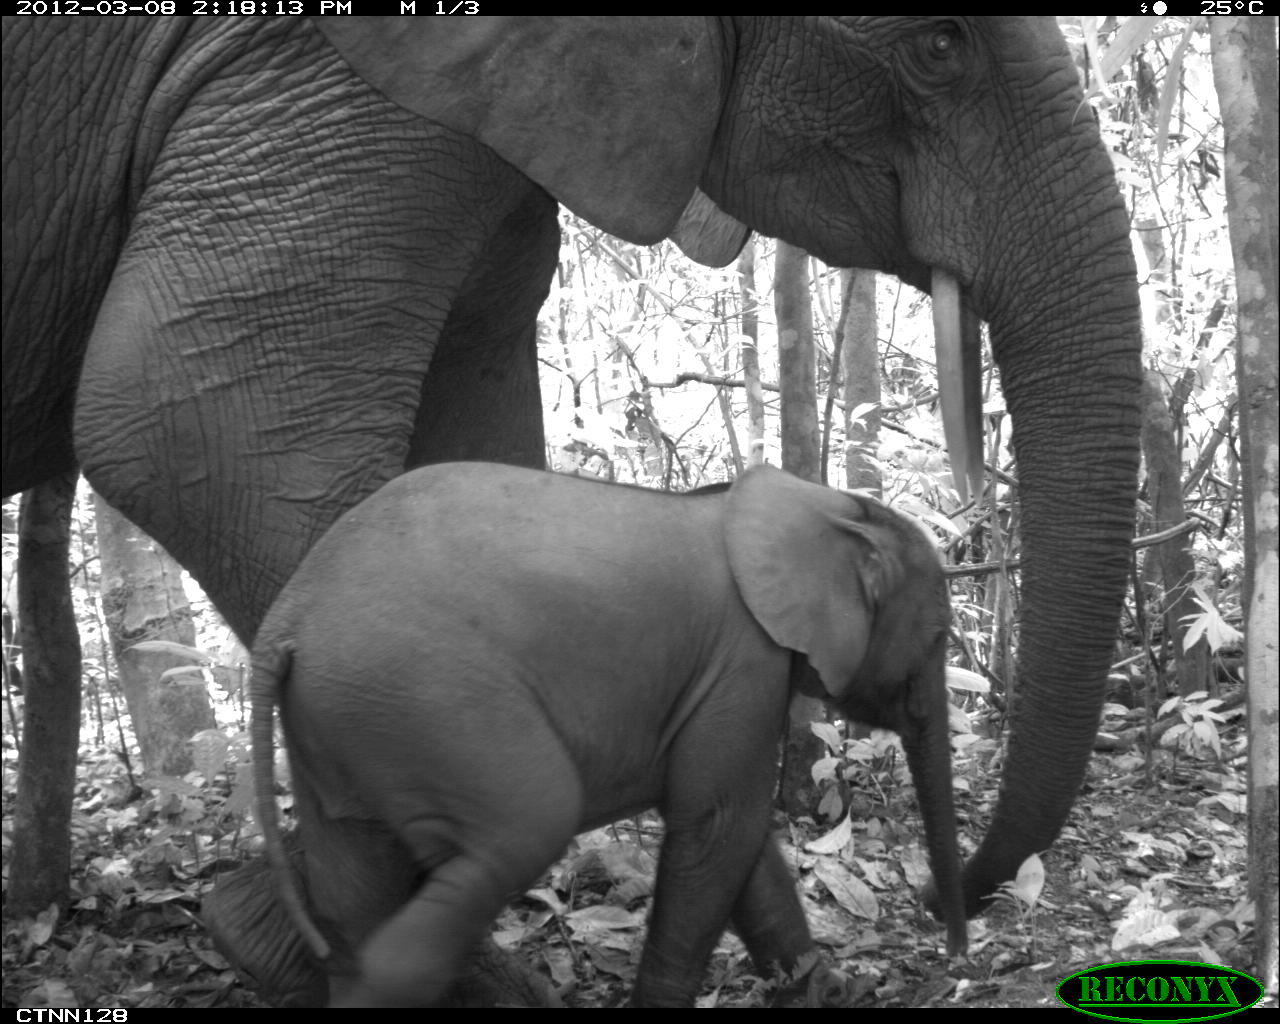 African bush elephants (Loxodonta africana) in Nouabale Ndoki National Park, Republic of Congo. This species is listed as vulnerable by the IUCN.